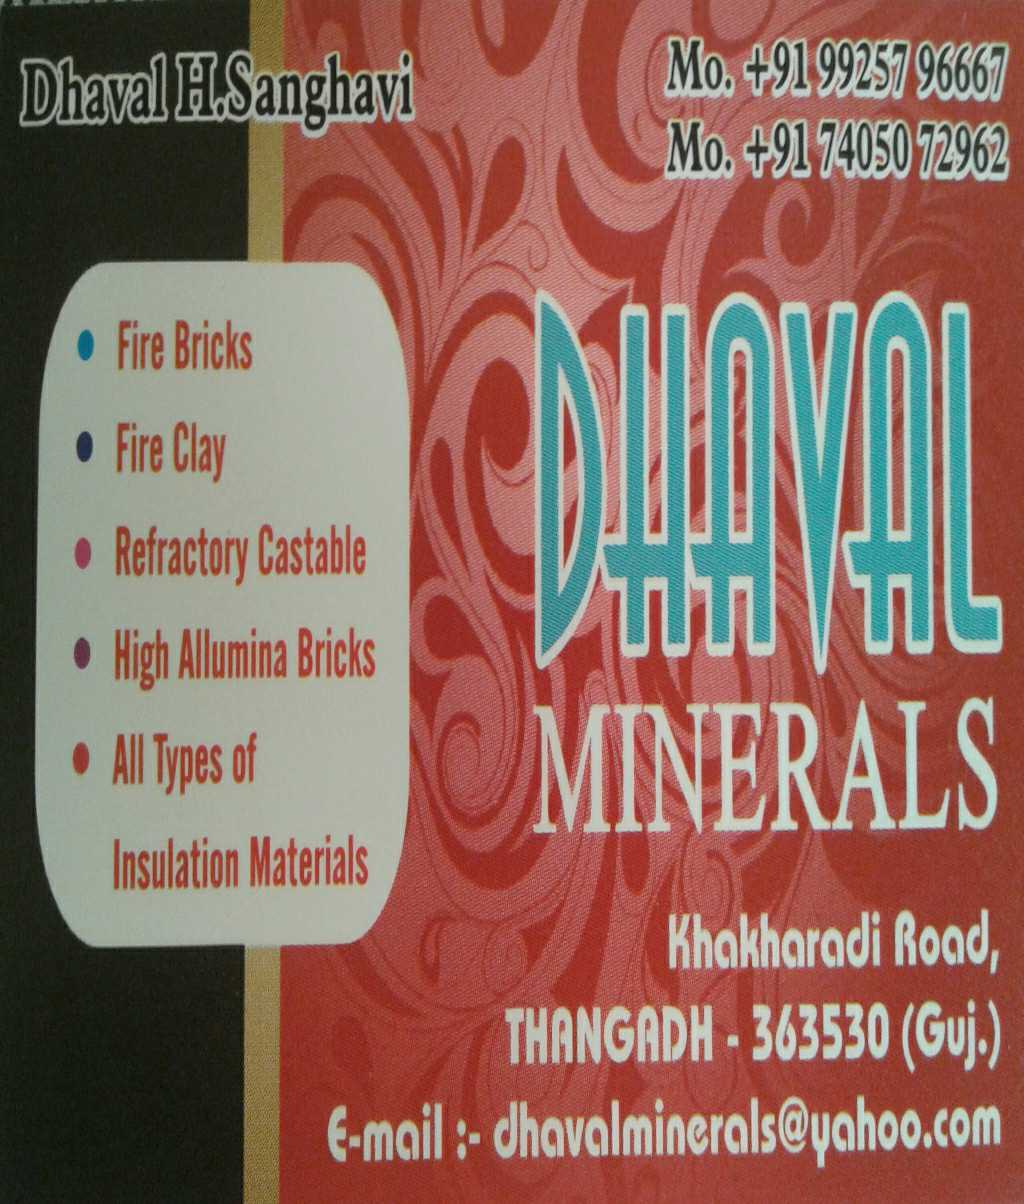 Dhaval Minerals